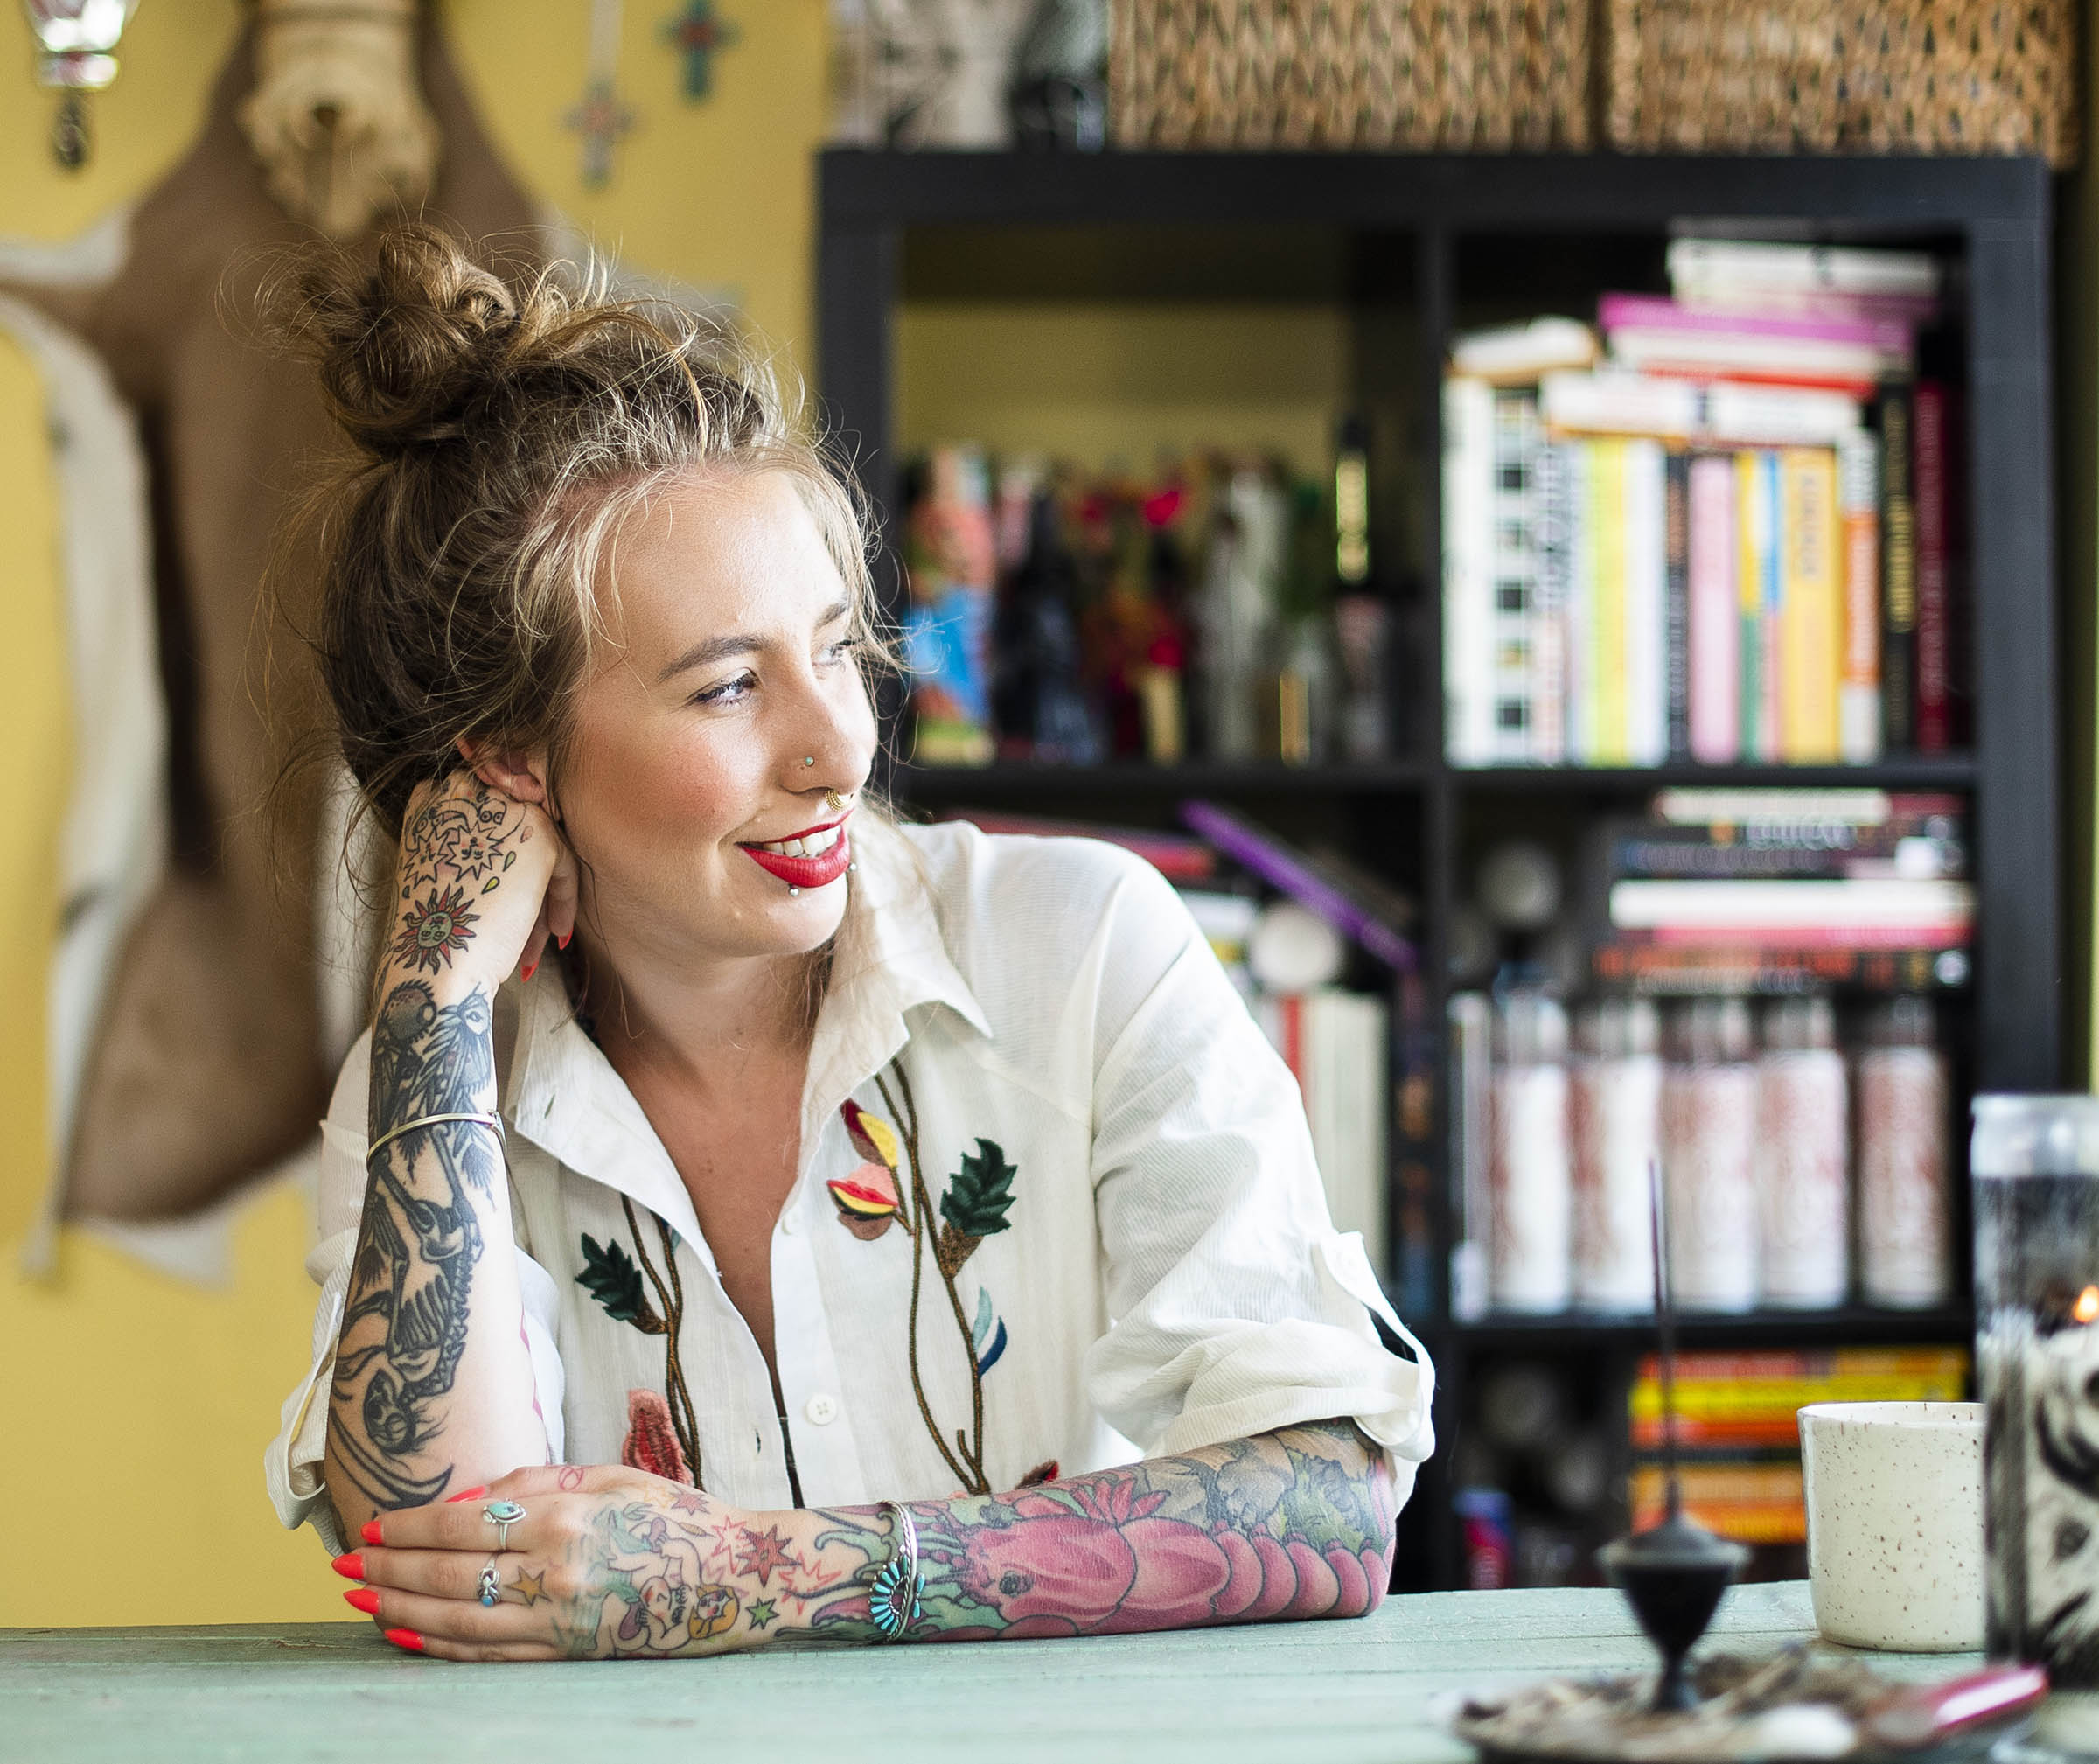 The author sits at a table, smiling at something off to the side. Her hair is up, her fingers and wrists adored with turquoise jewelry. She wears a white shirt with flowers and vines embroidered on it. Behind her, out of focus, is a laden bookshelf, and the skin of a large animal mounted on a yellow wall.